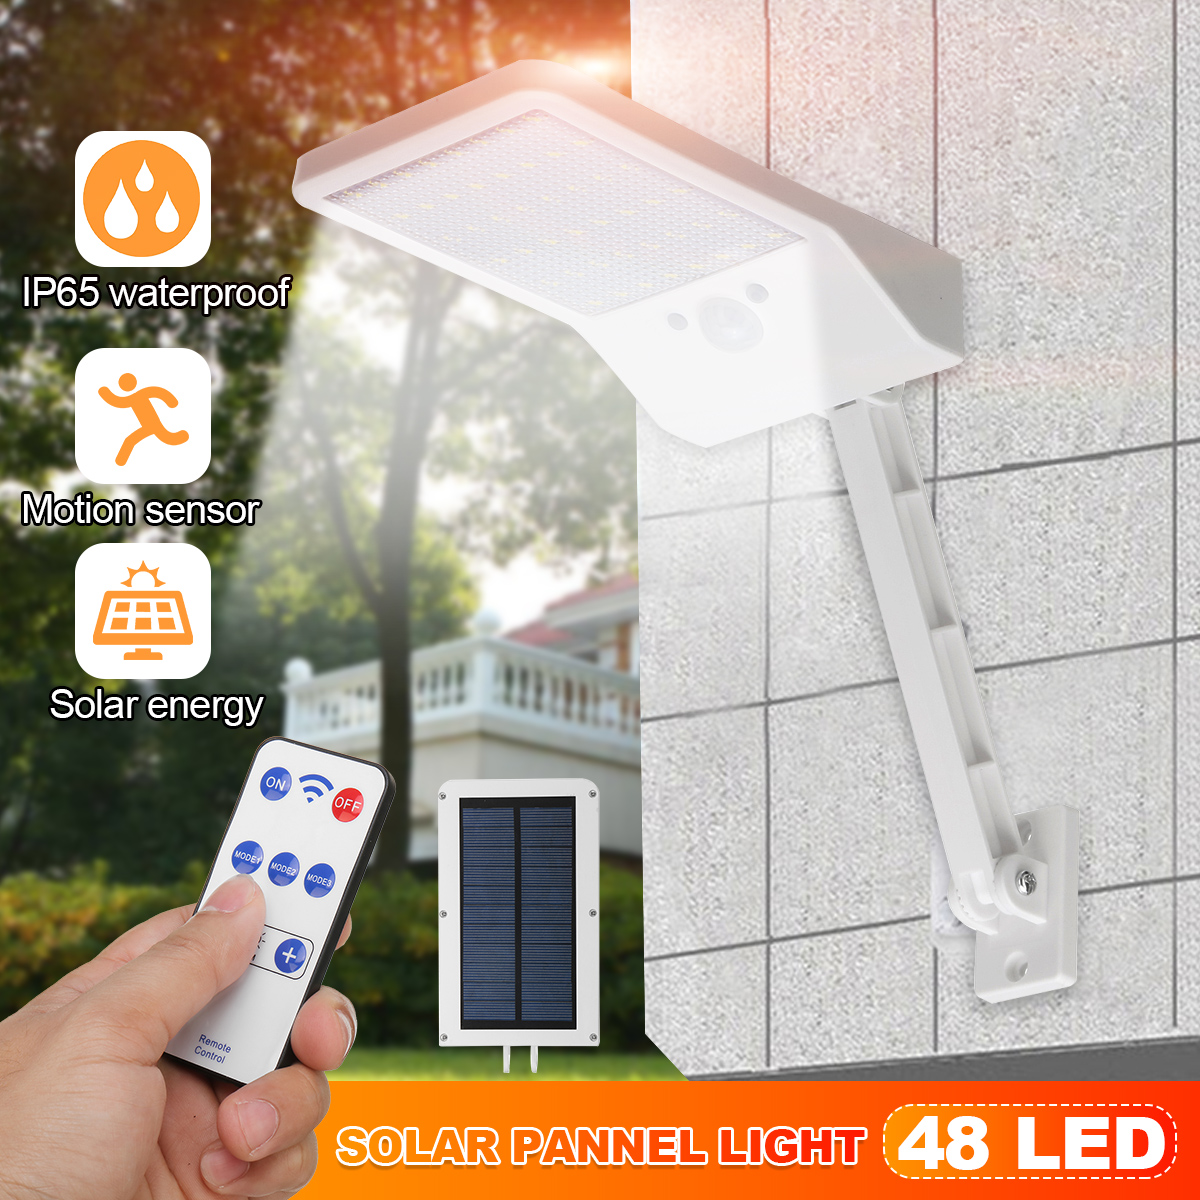 LED Solar Light PIR Motion Sensor With Solar Pannels Outdoor Garden Dimmable Wall Street Light Path Security Lamp Remote Control